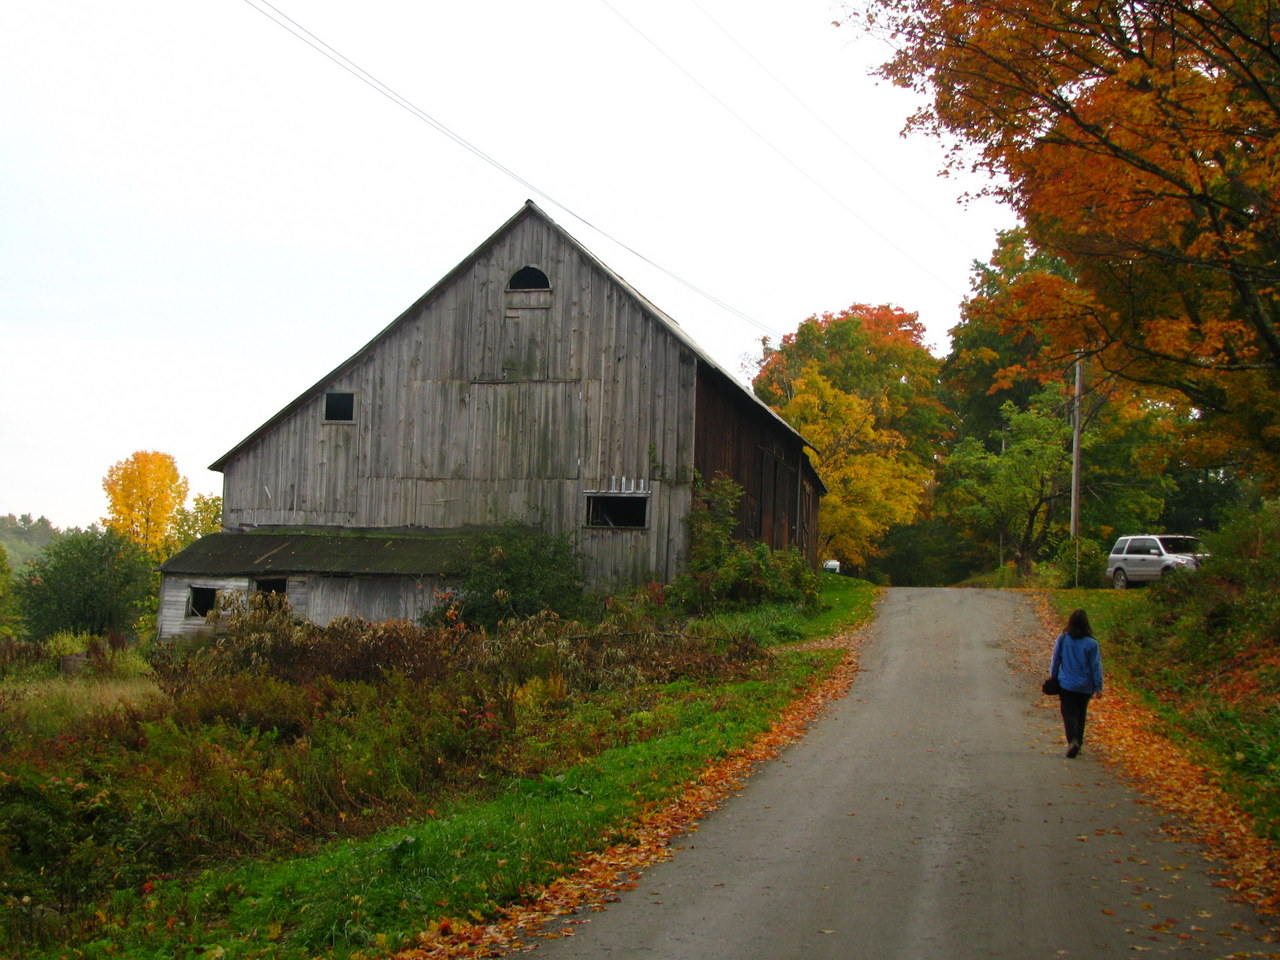 Though The Farmhouse Was Old They Had Pictures Of Sugar Maple Out Front When It Small Guest Suite Comfortably Up To Date